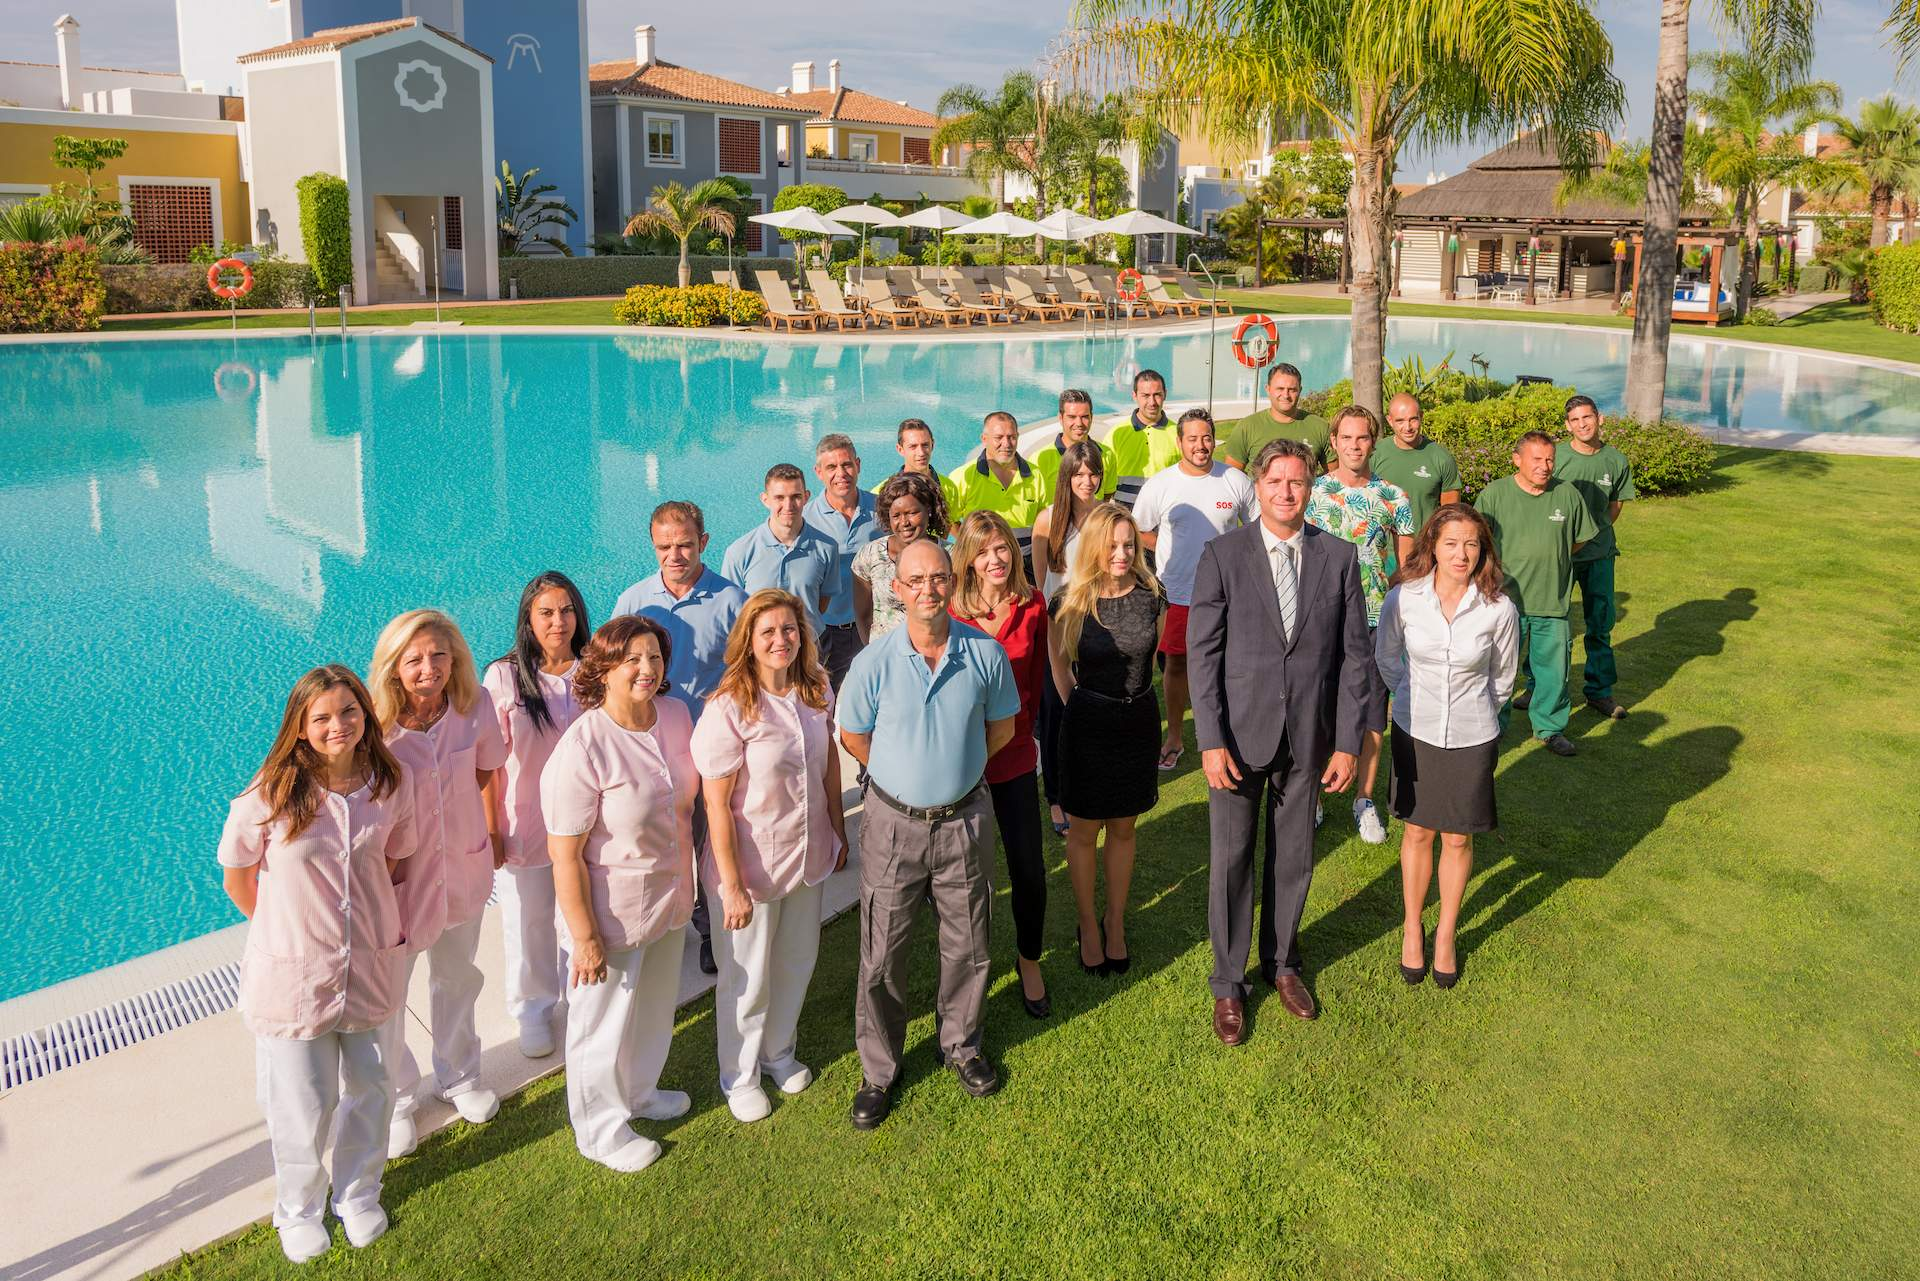 Cortijo del mar Resort Team